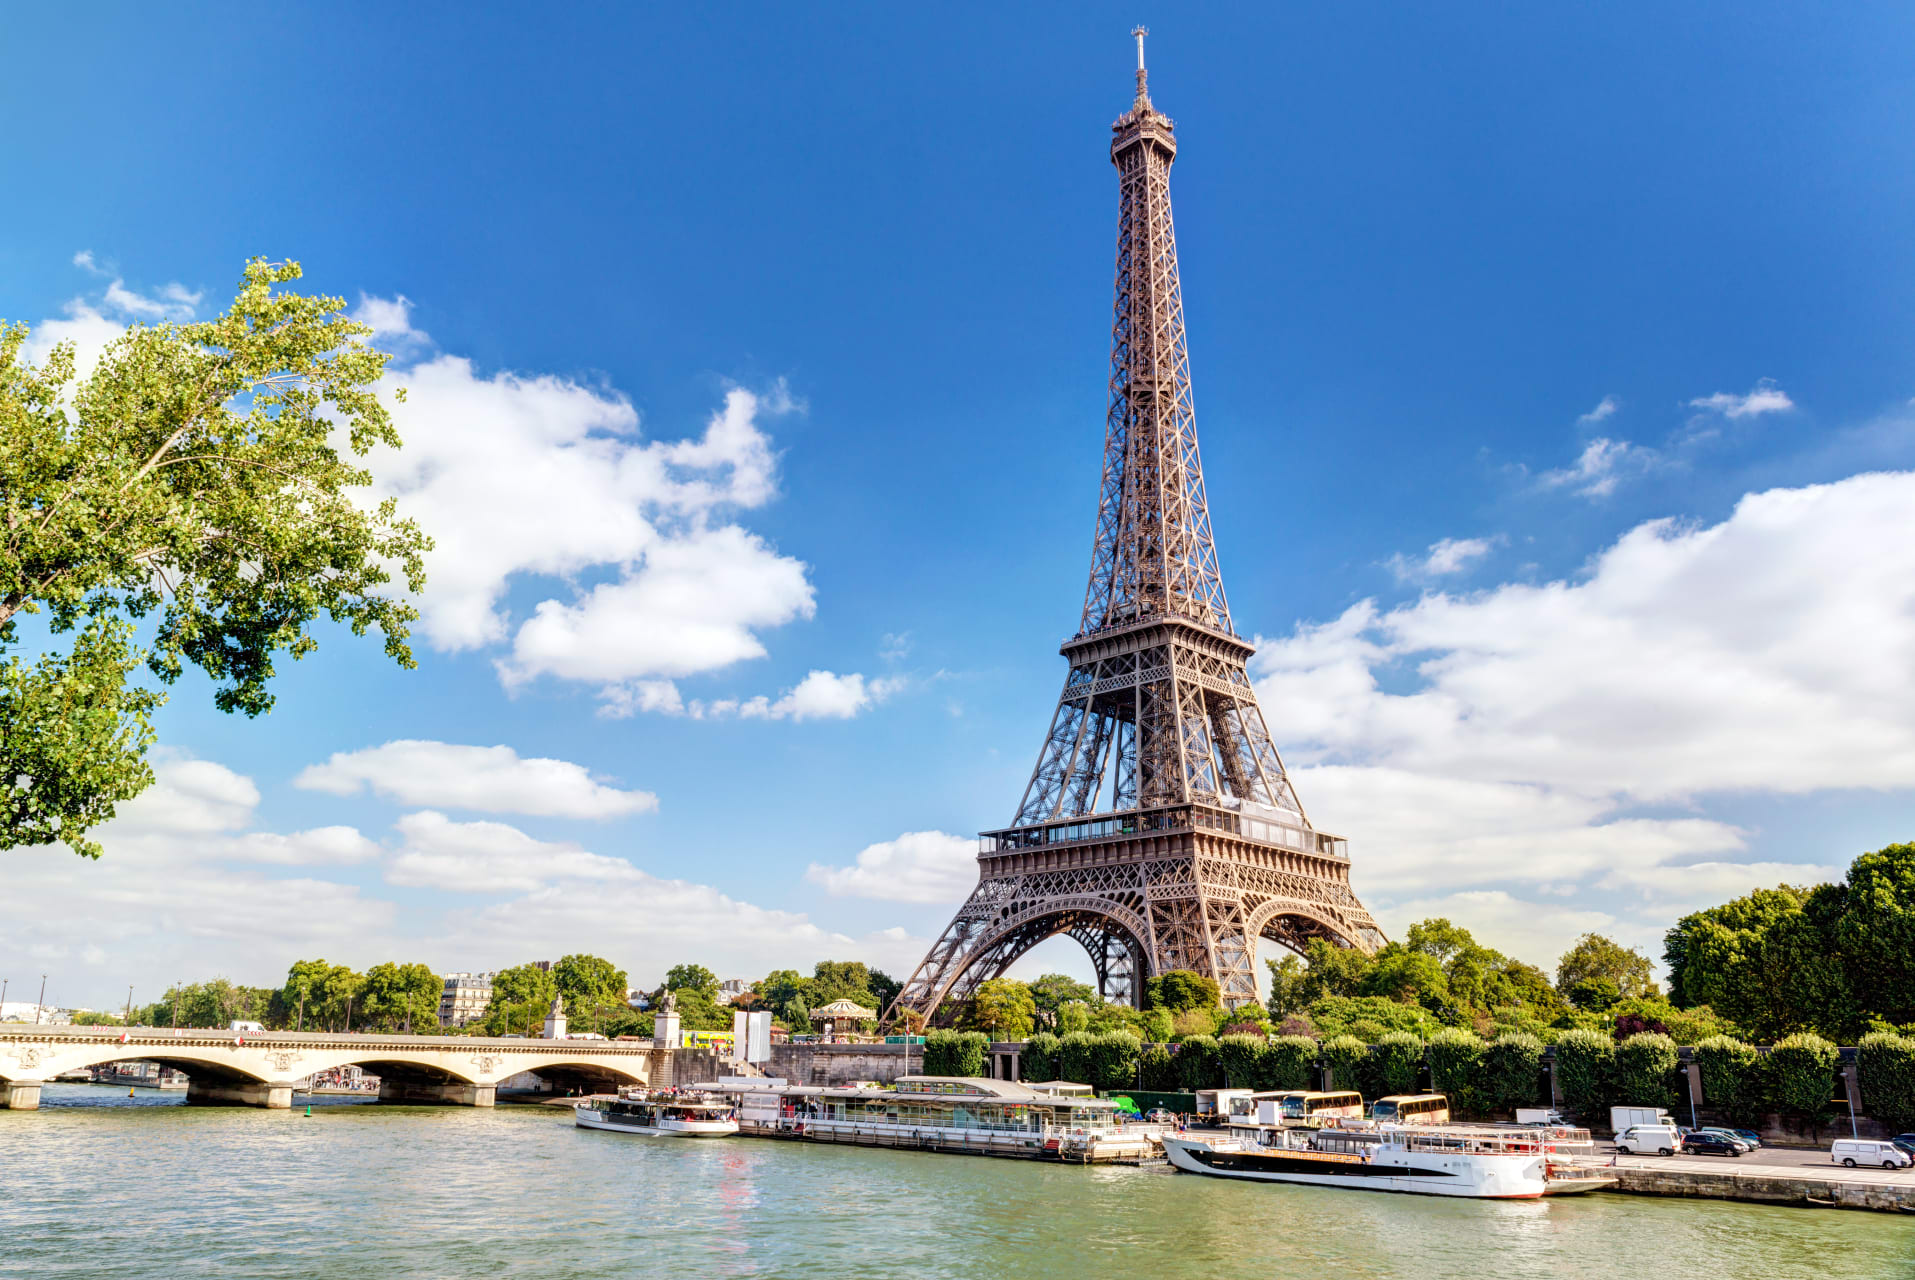 Paris - Over The Water: On the River Seine (The Right Bank and the Eiffel Tower)